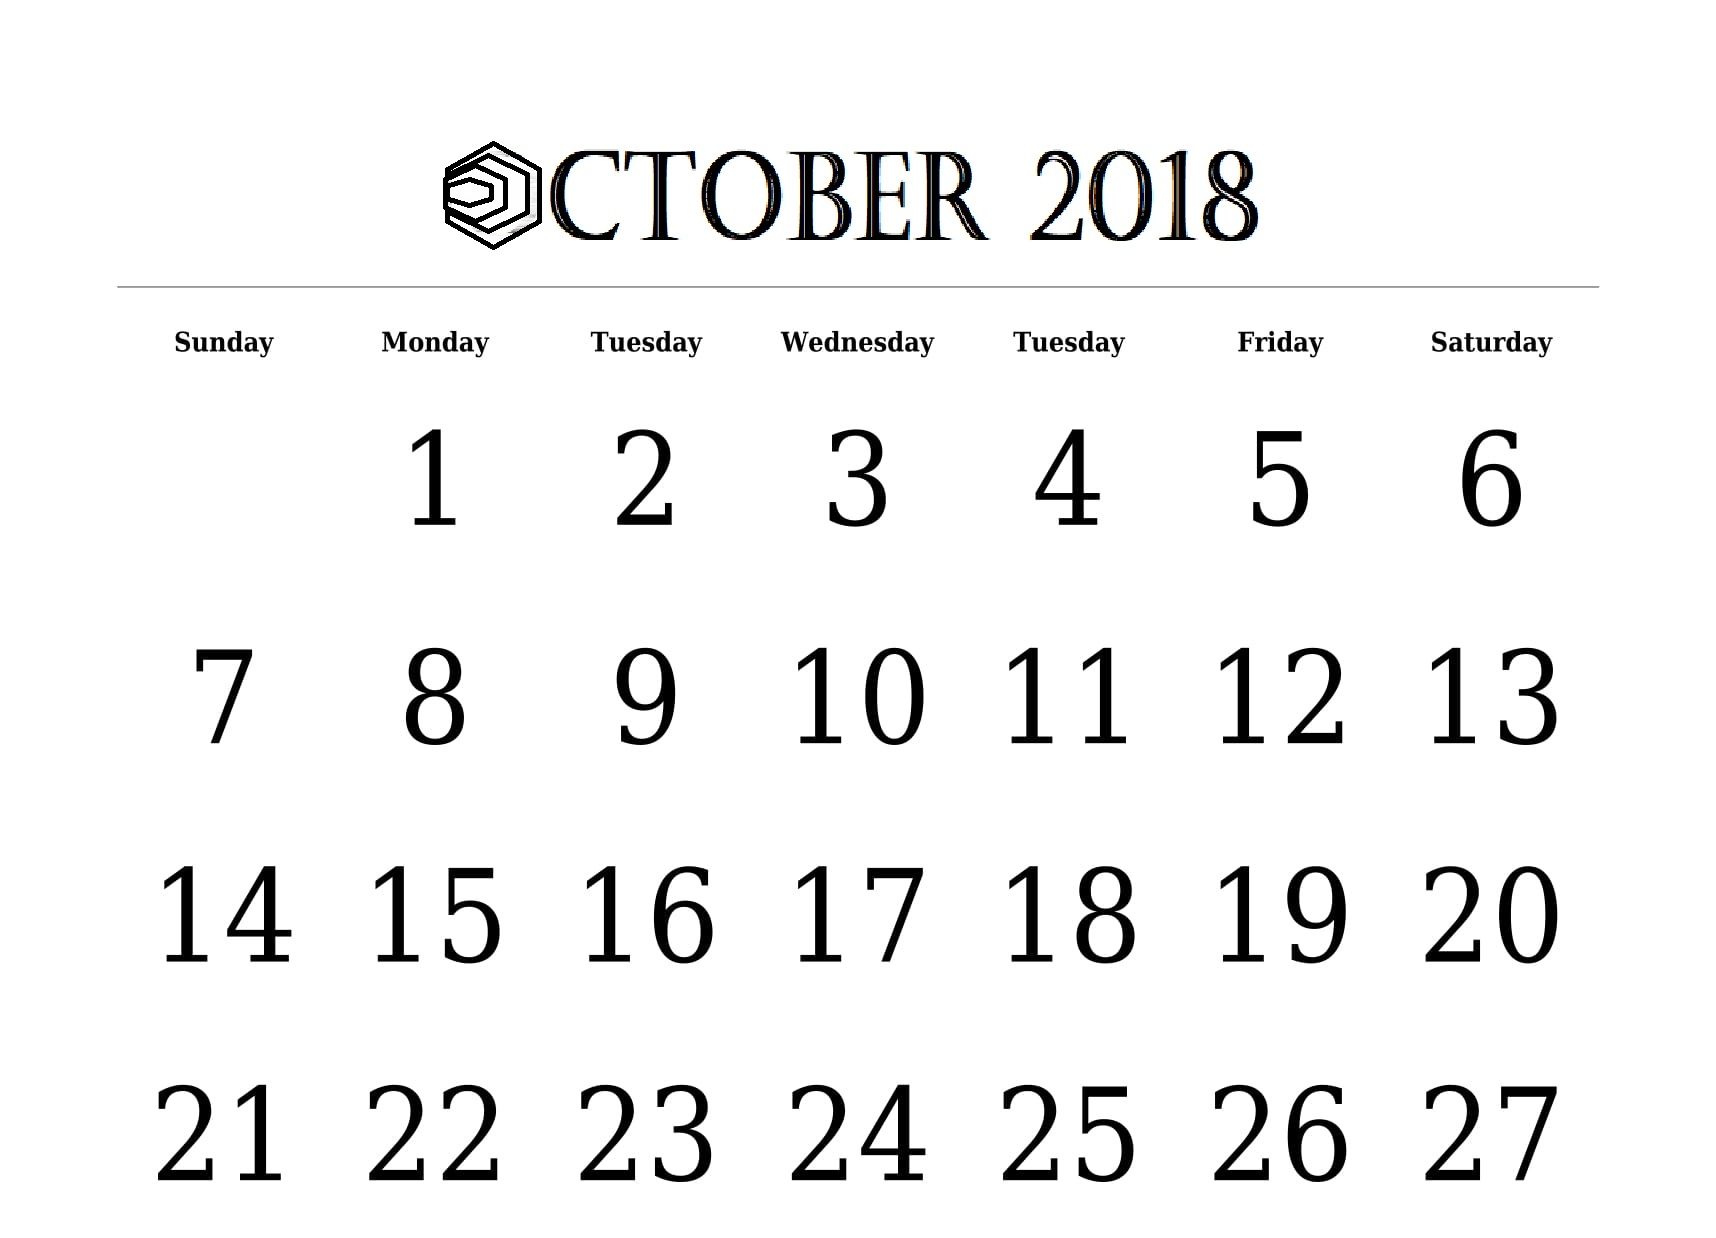 free 2018 calendar october landscape portrait template free Free October 2018 Calendar Word Document erdferdf